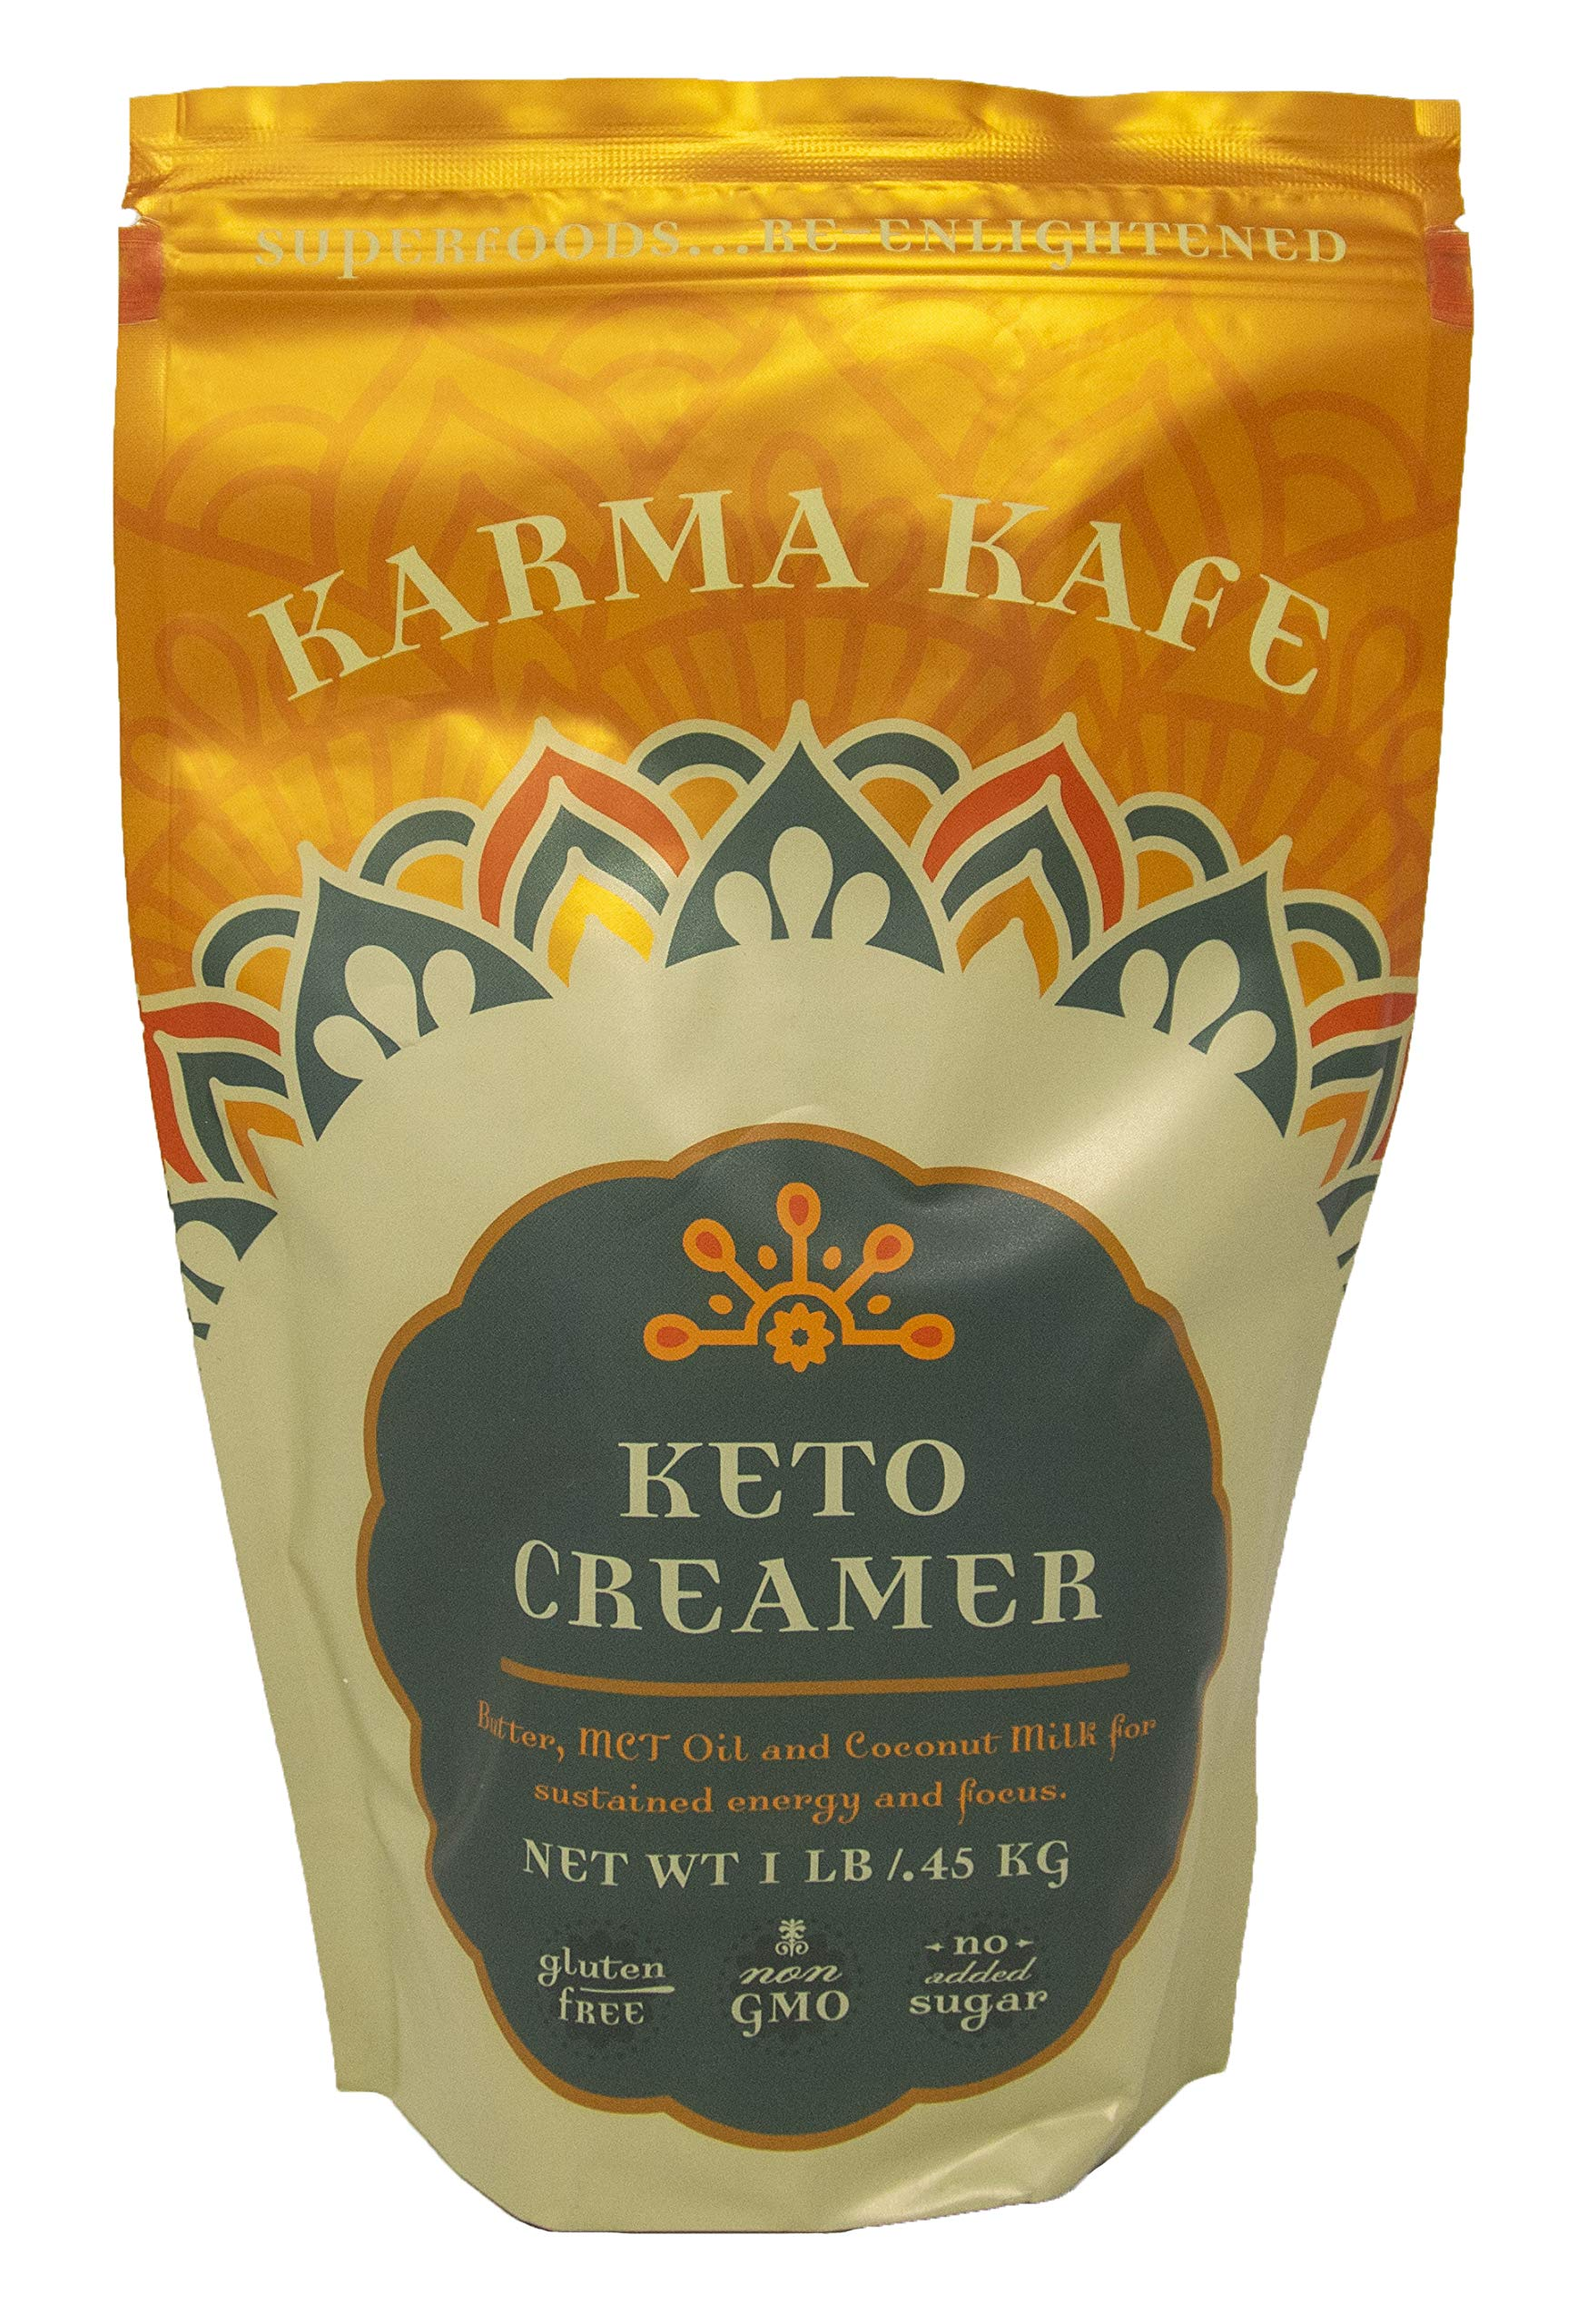 Karma Kafe Keto Creamer with MCT oil, Coconut Milk, Butter, High Fat BPC Coffee Creamer Superfood - 1 Pound Resealable Package by Karma Kafe (Image #1)